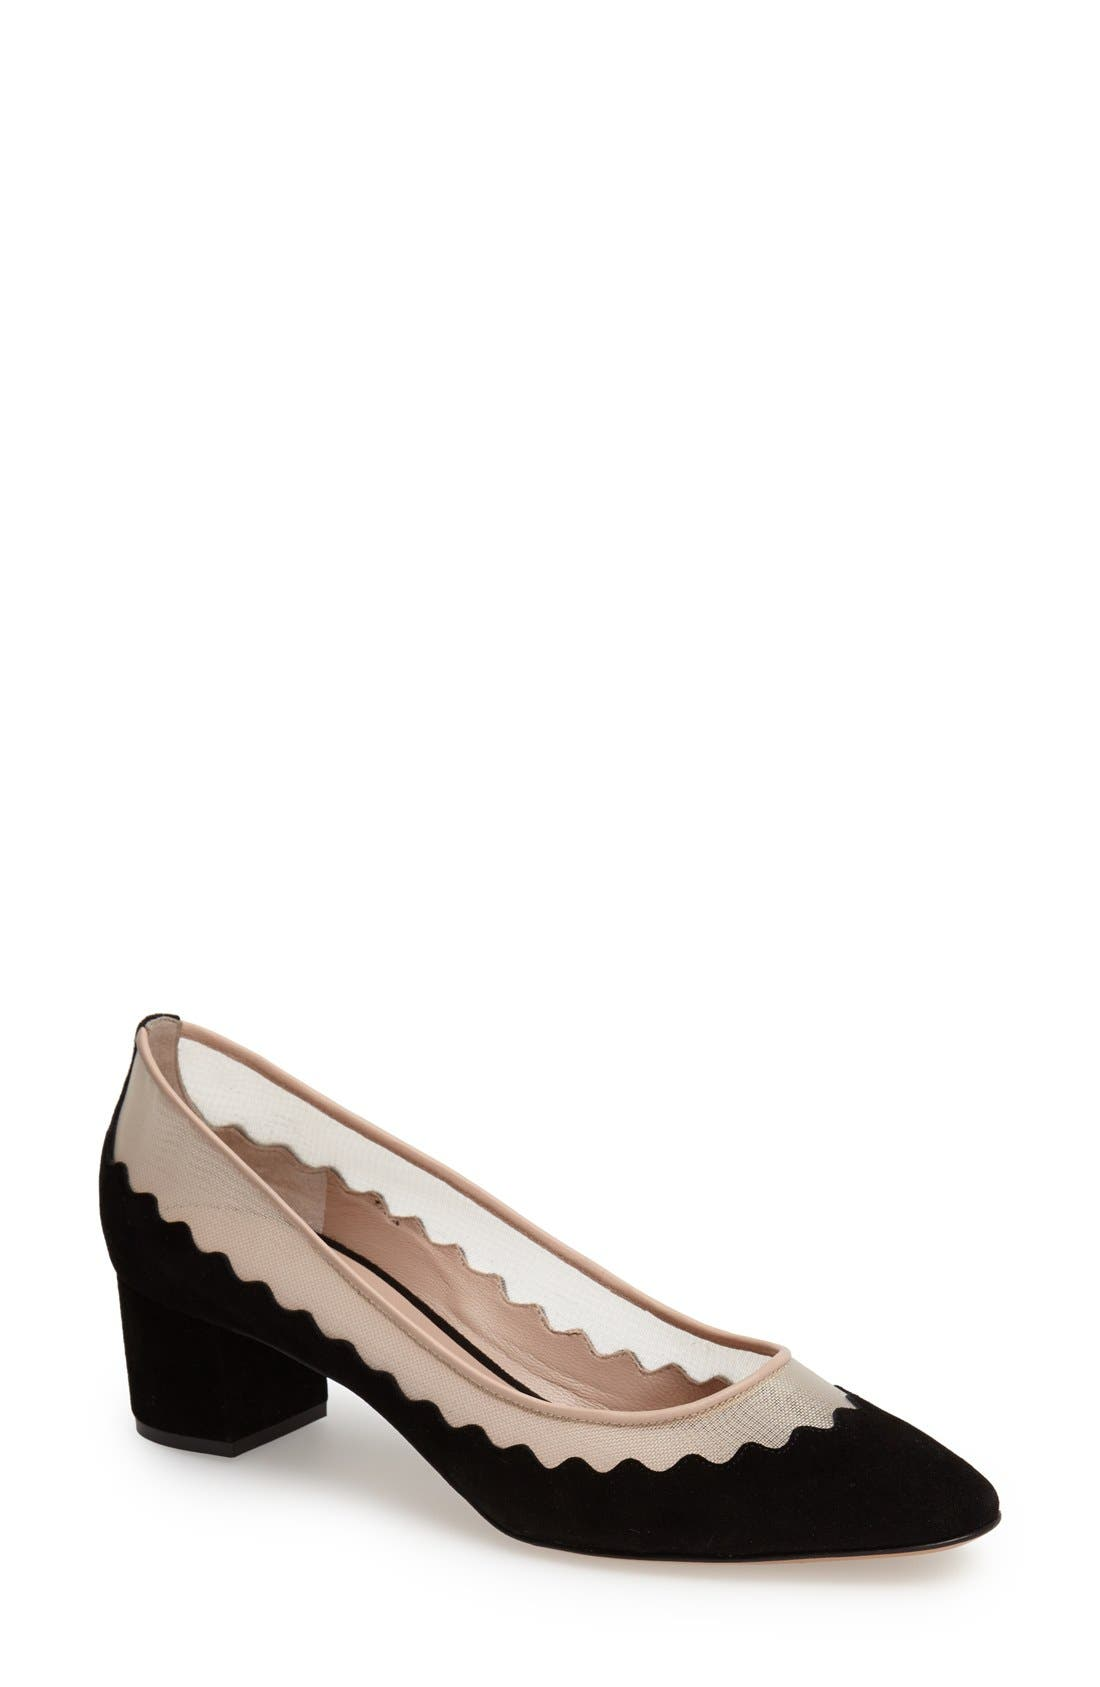 Main Image - Chloé 'Bridget' Scalloped Almond Toe Pump (Women)